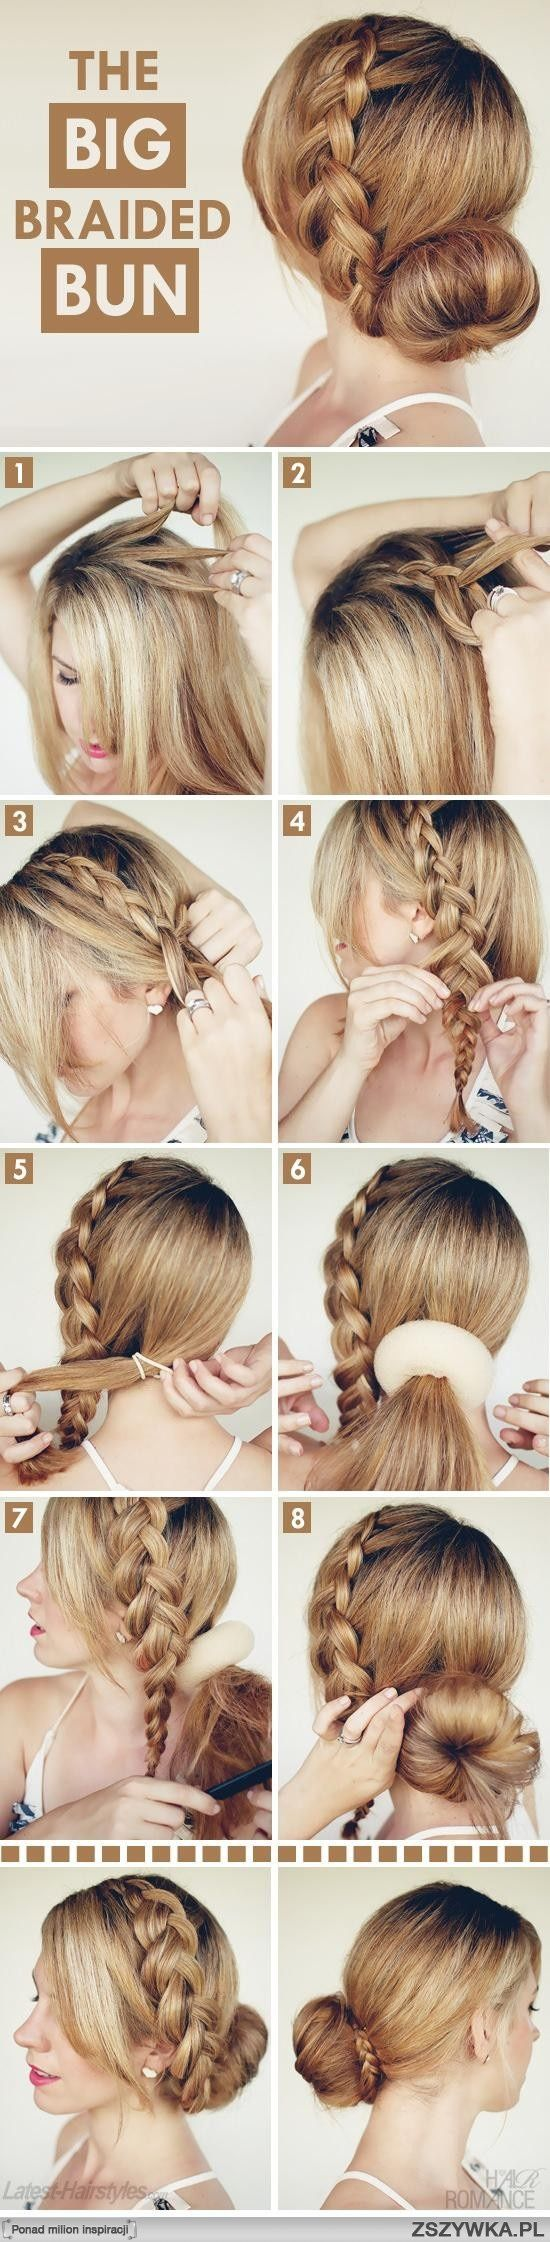 best images about hair styles on pinterest long hairstyles